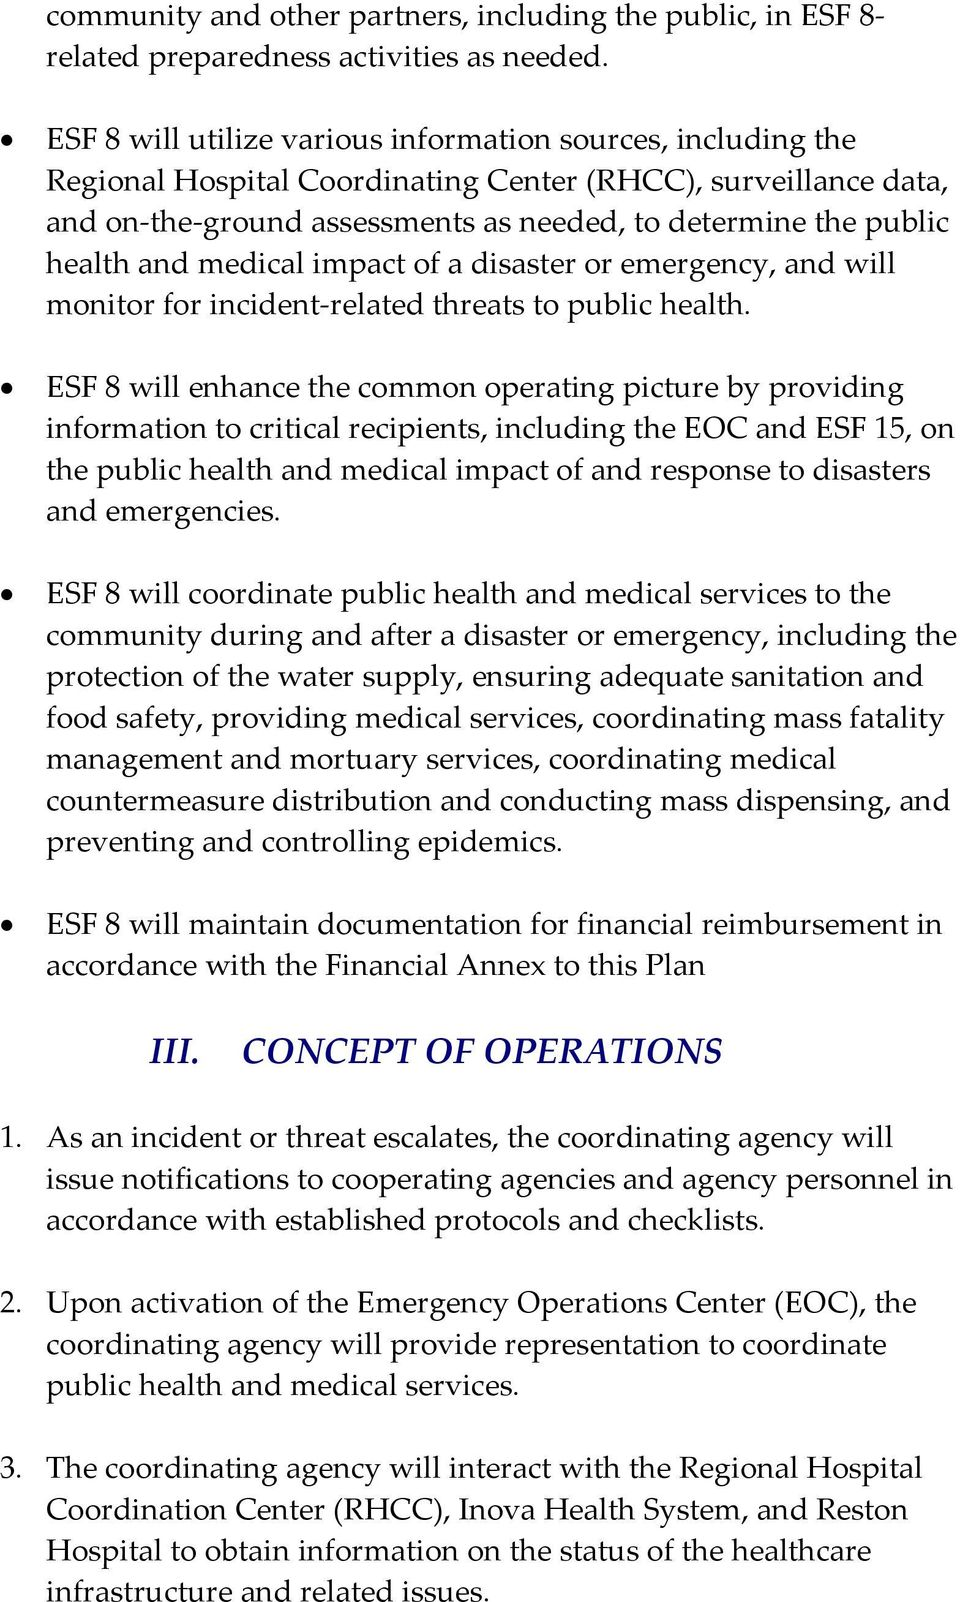 and medical impact of a disaster or emergency, and will monitor for incident related threats to public health.